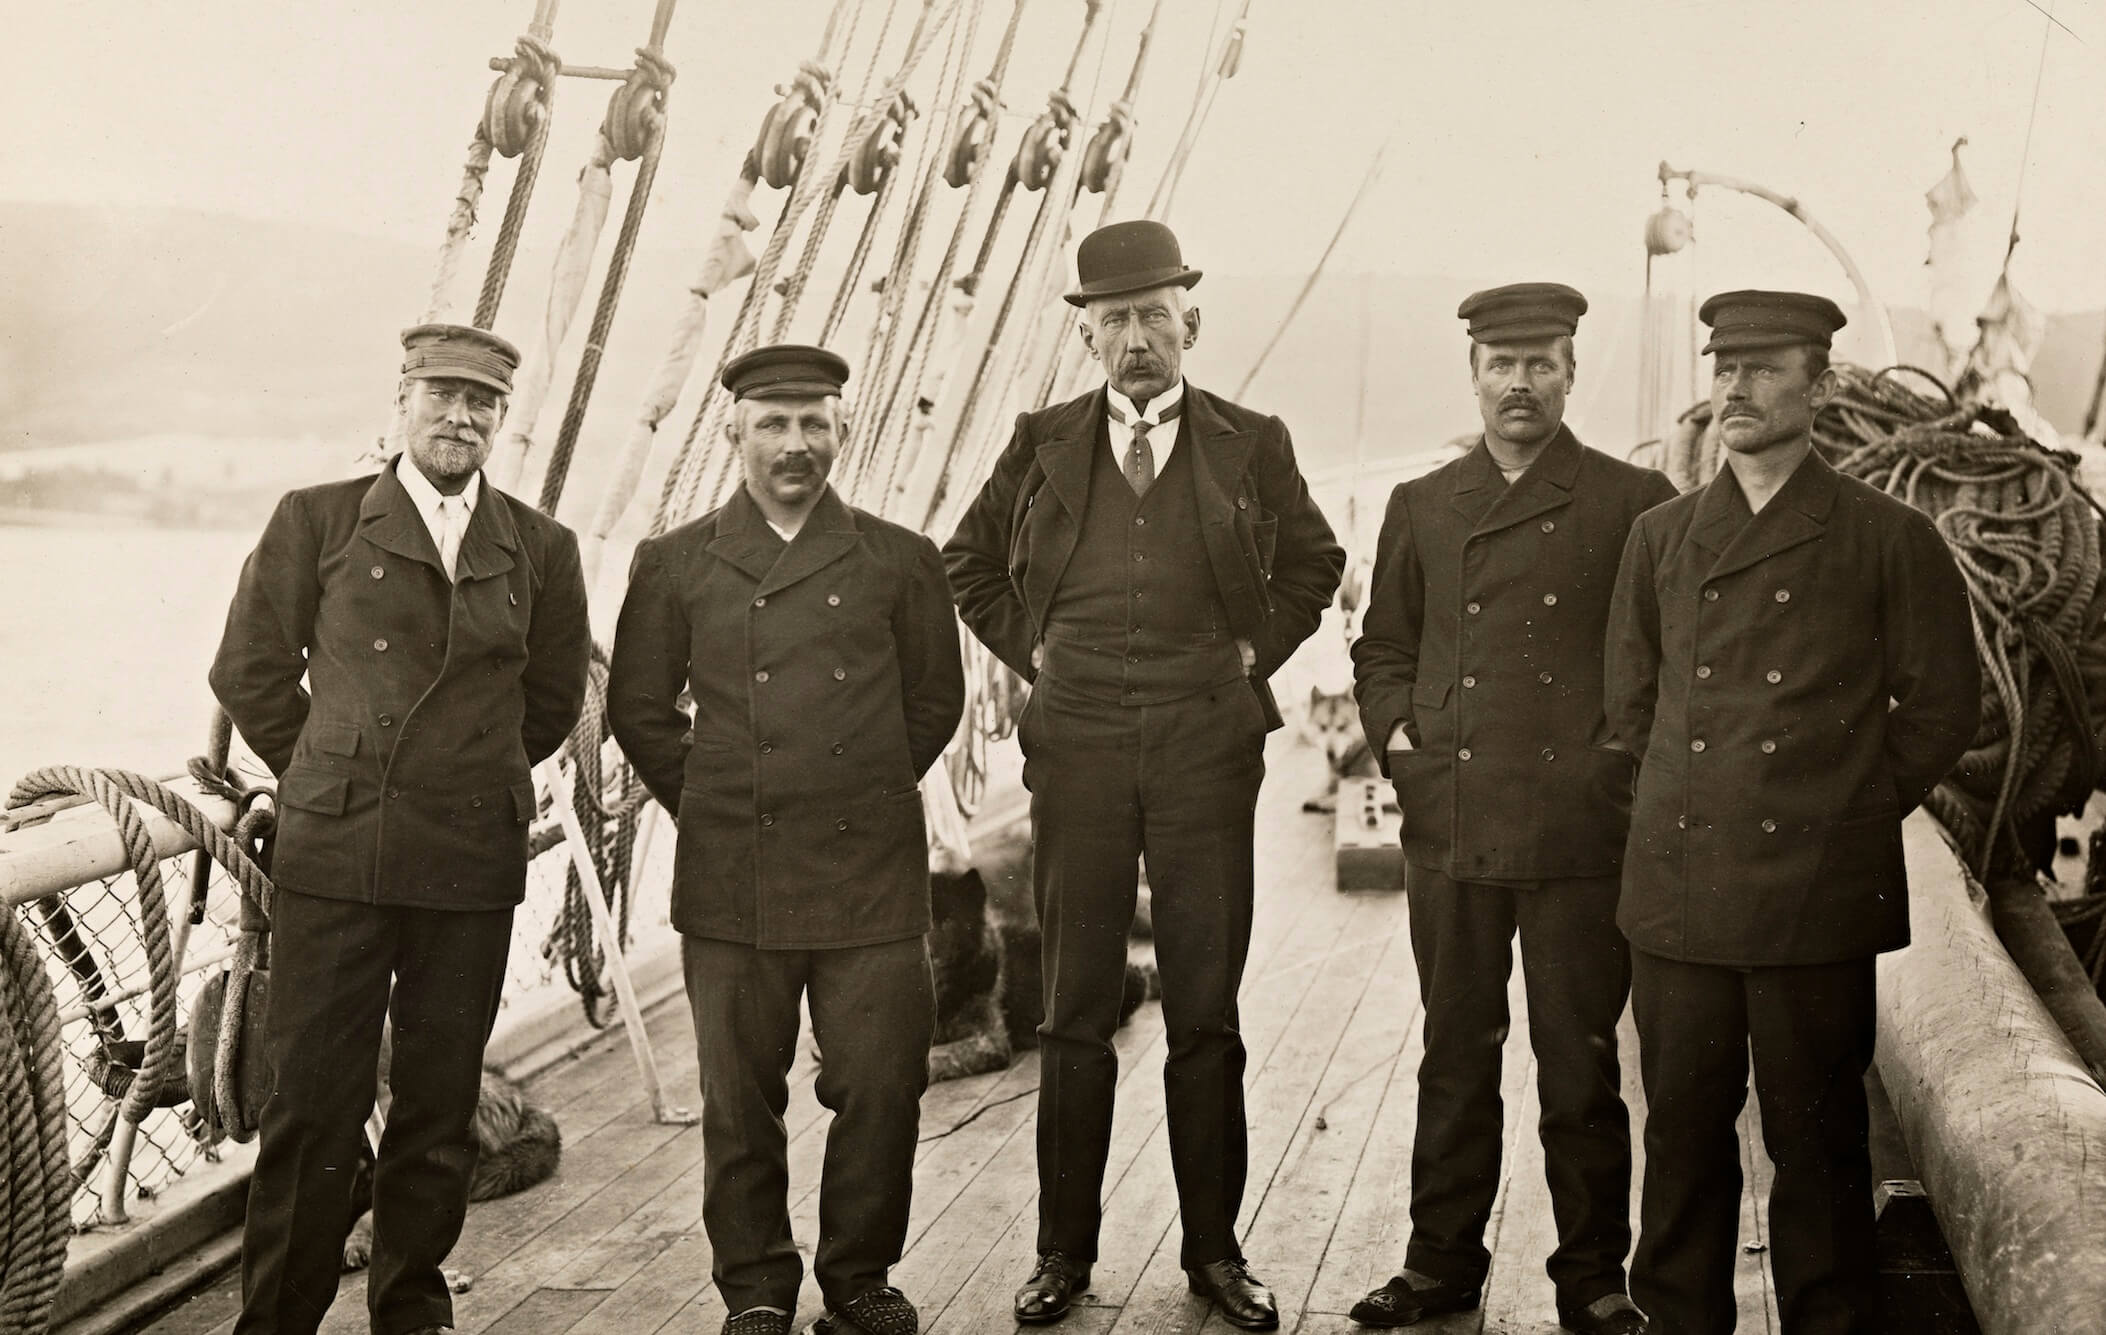 Roald Amundsen and his crew in Antarctica